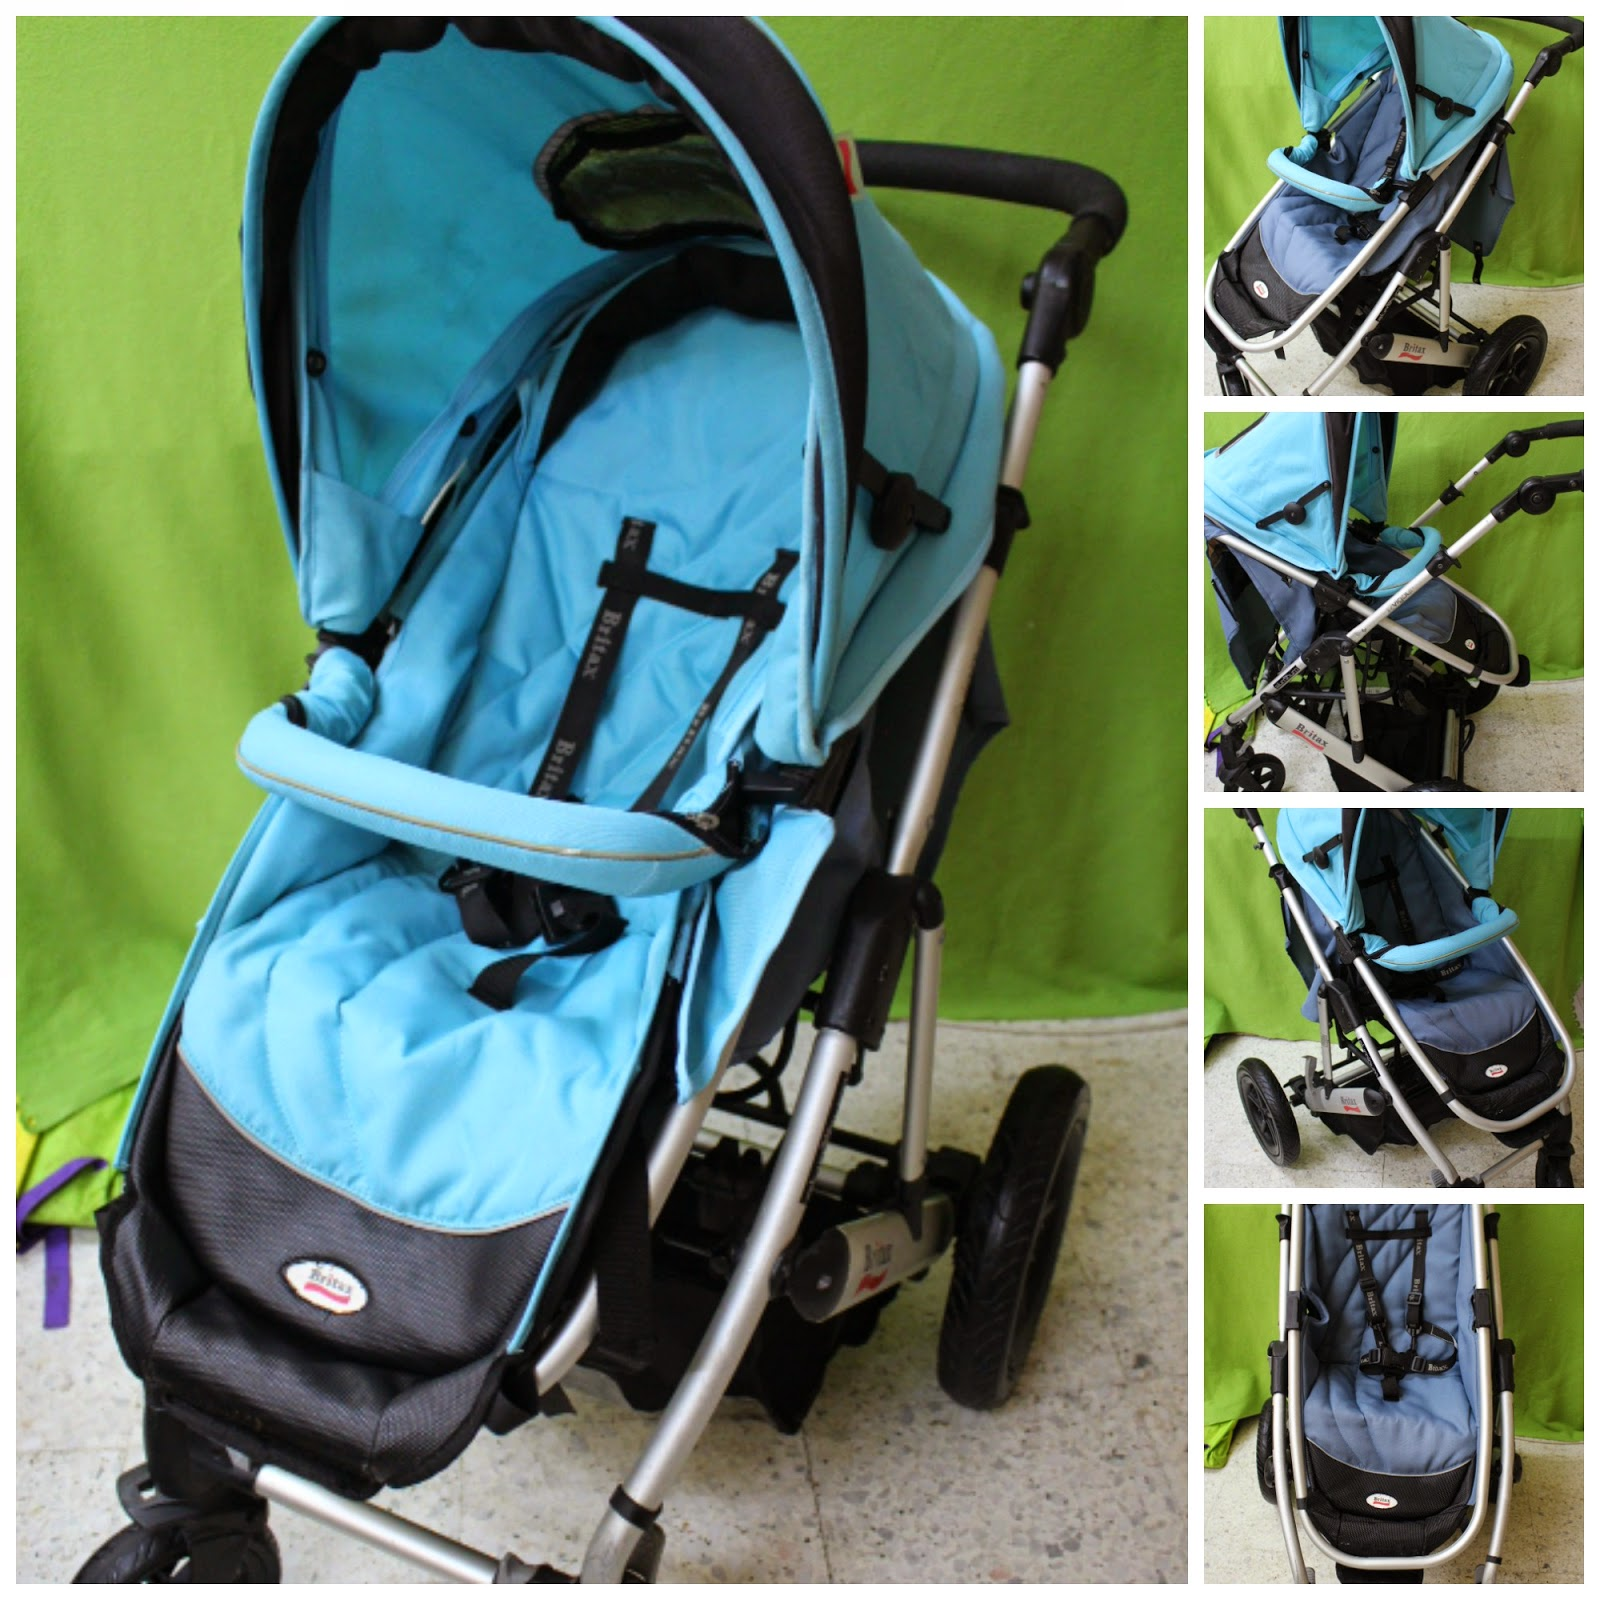 Baby Playpen With Canopy Amy Sweety Store Britax Vigour Stroller